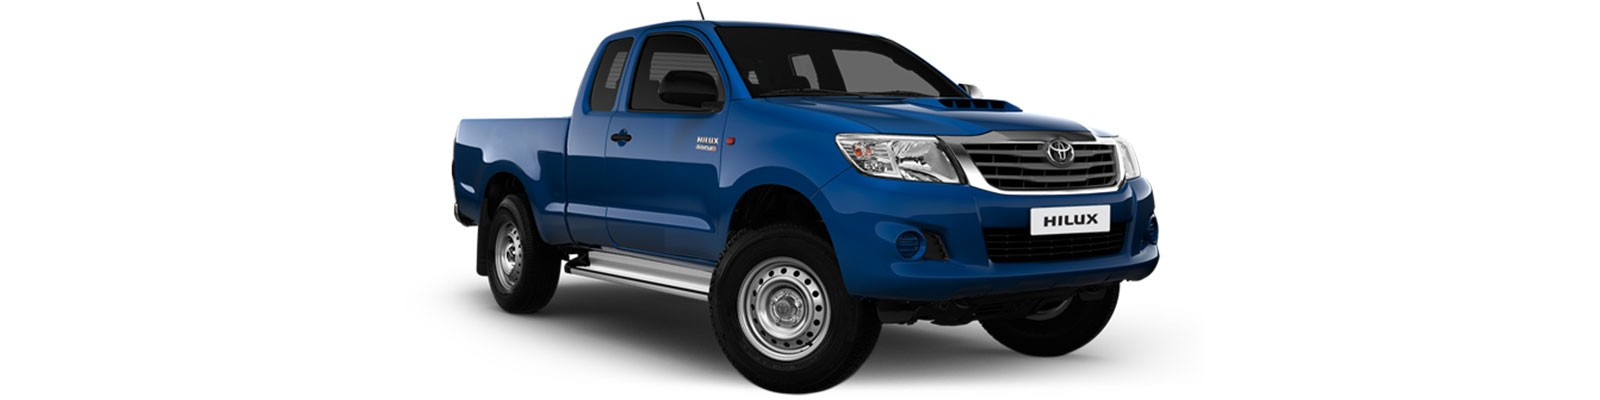 Accessories For Toyota Hilux Vigo Extra Cab 2012 To 2016